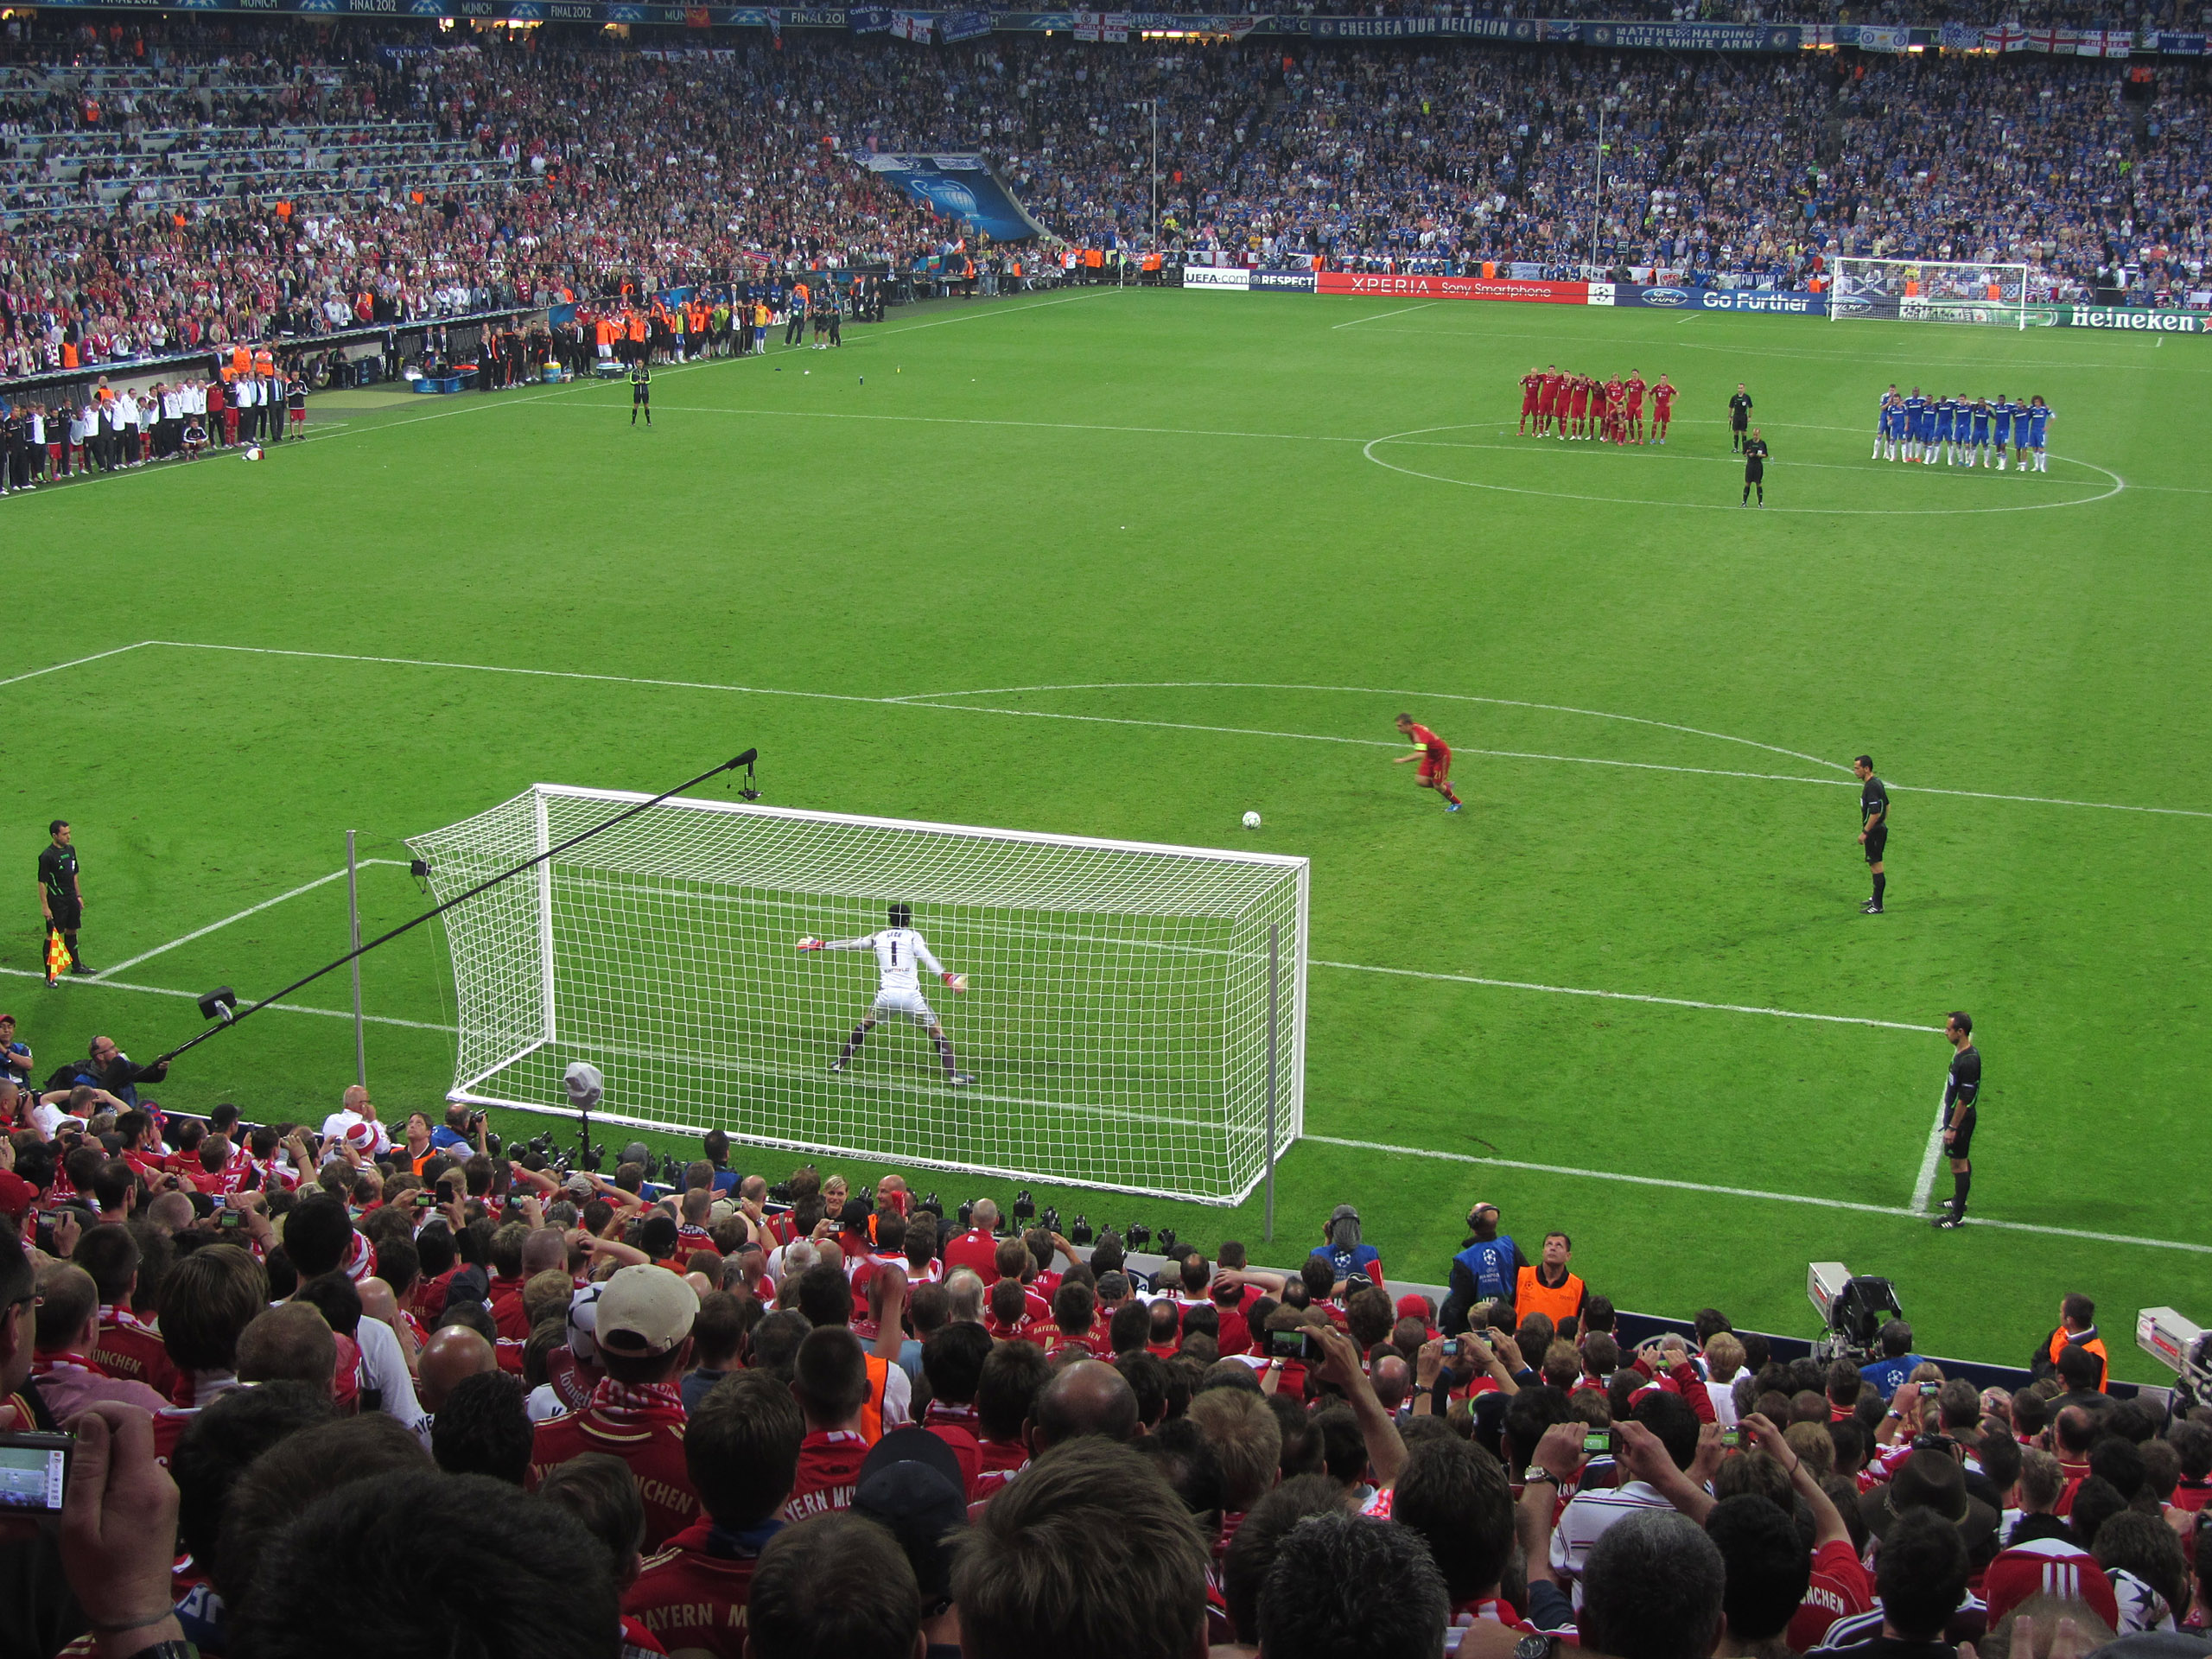 Tense times for Chelsea as the 2012 final goes to penalties in Munich